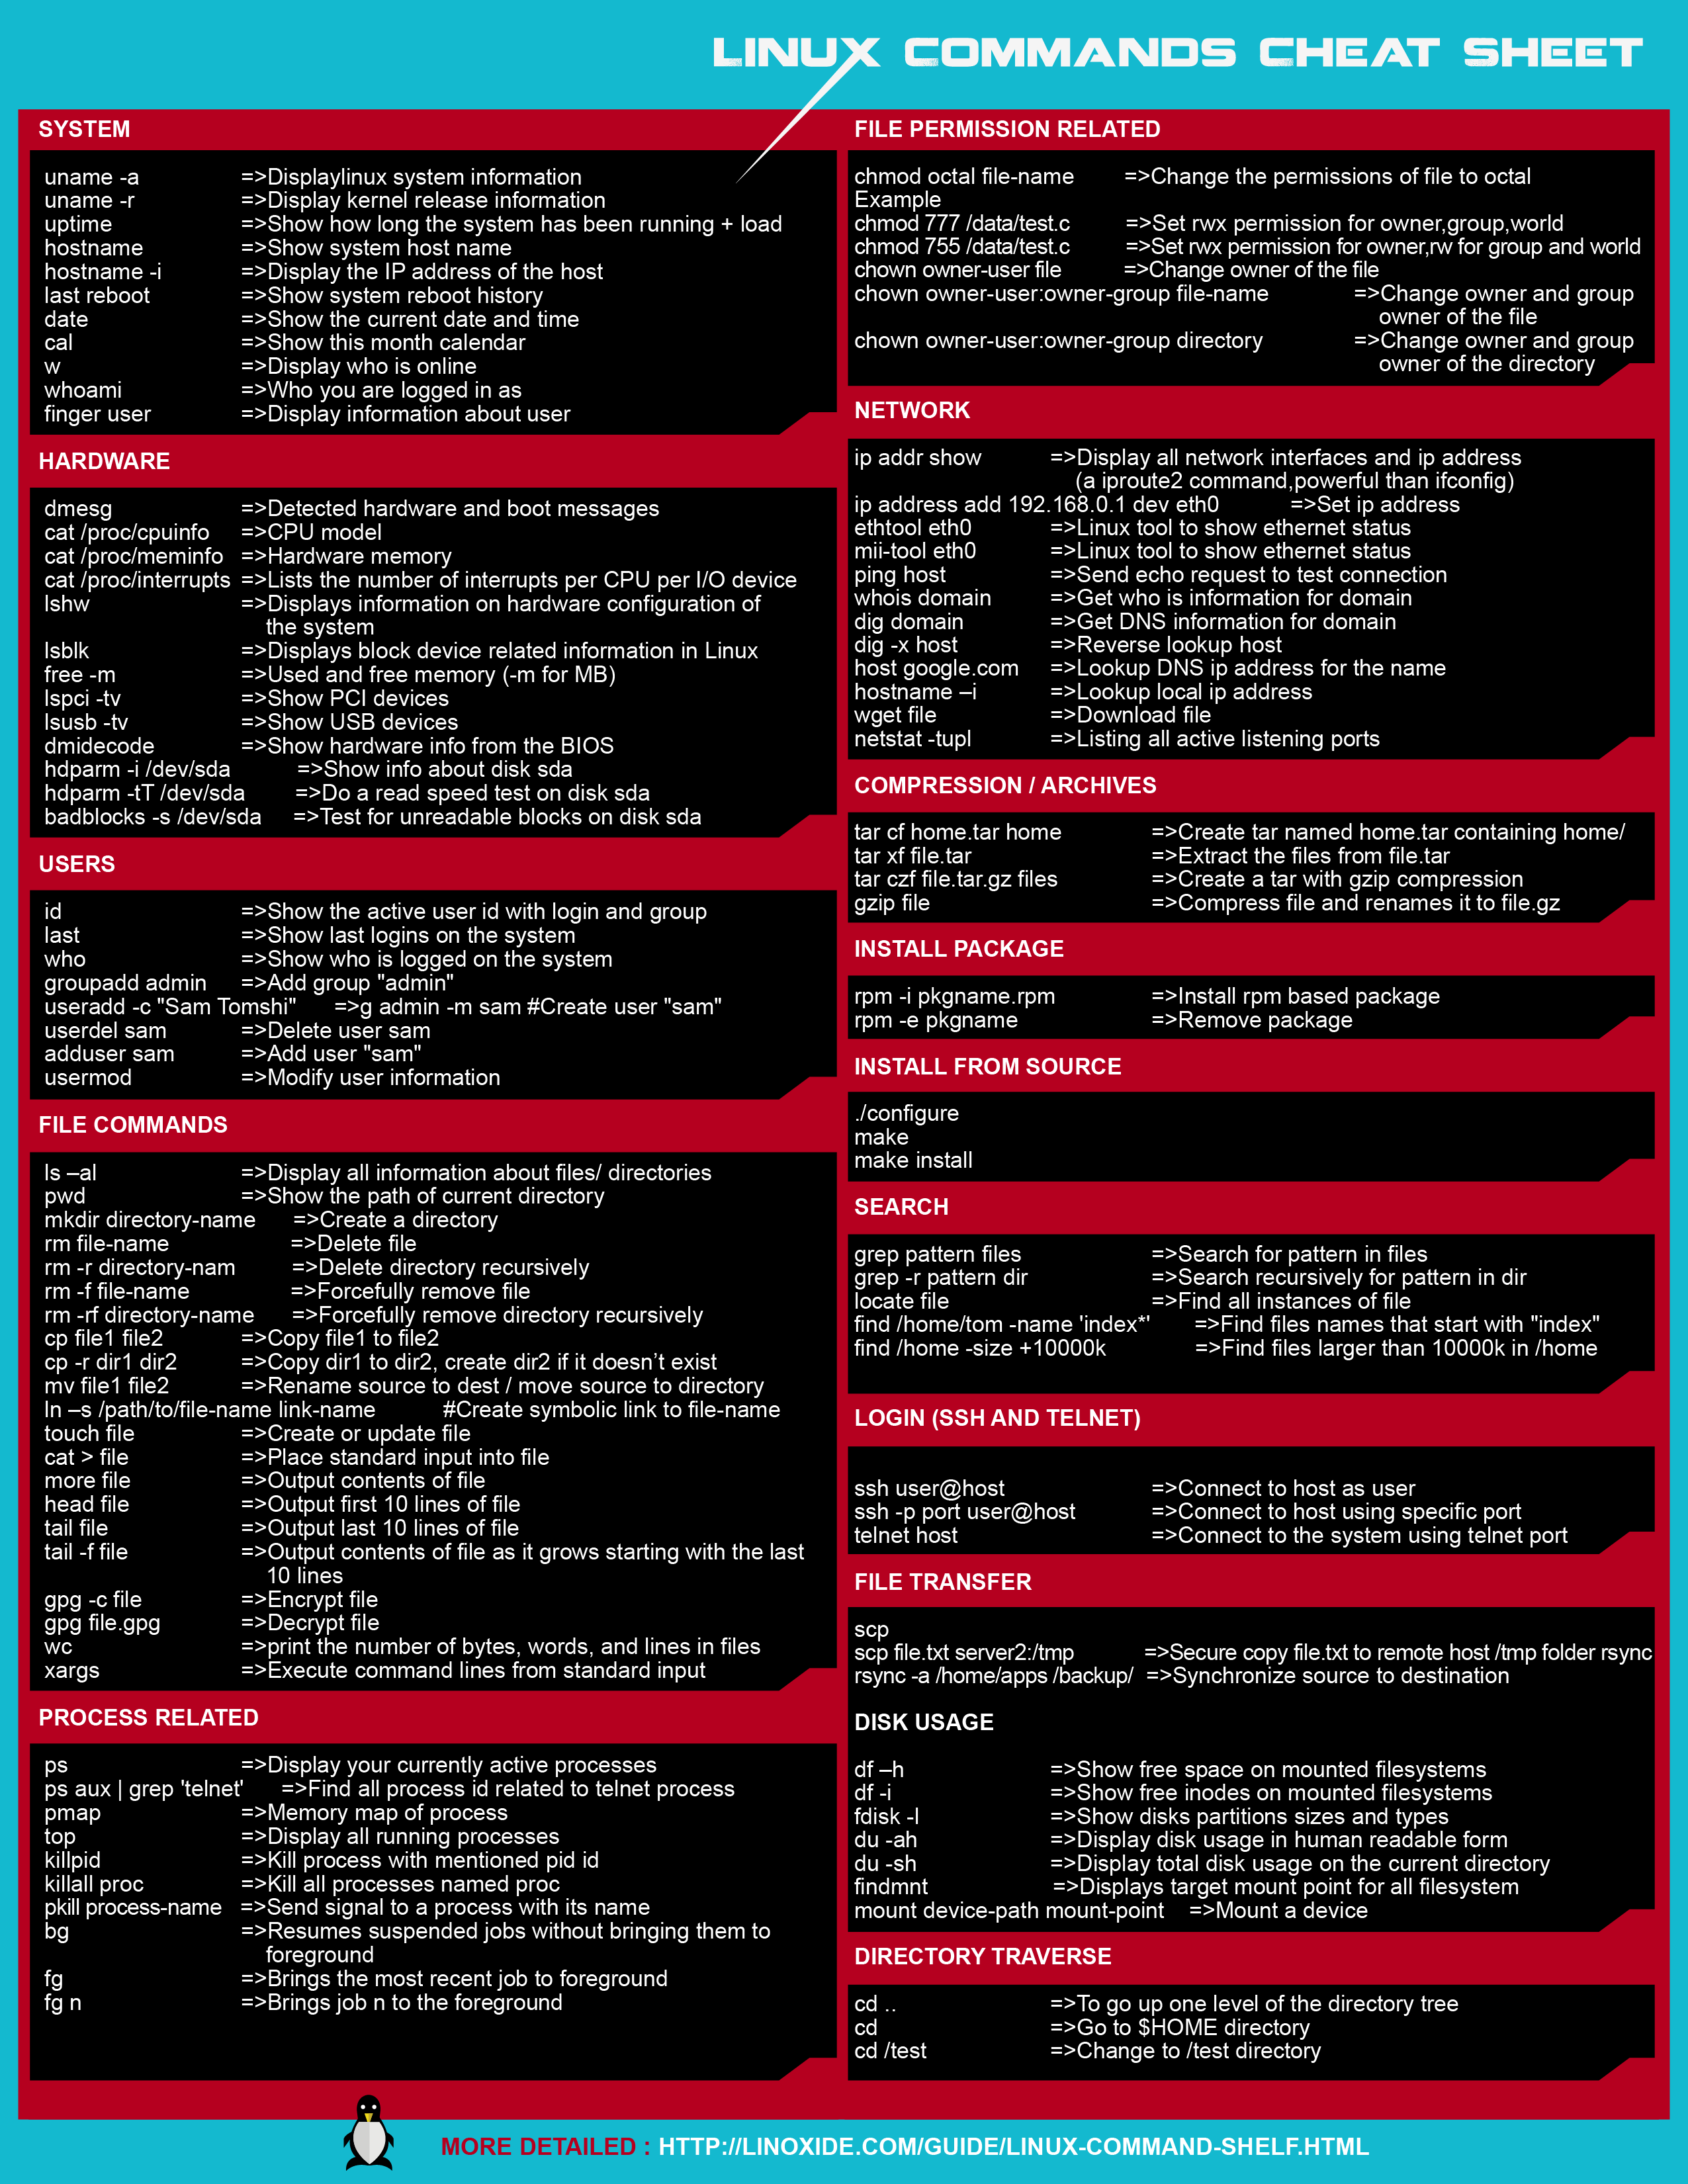 Linux commands cheat sheet in a well formatted image and pdf